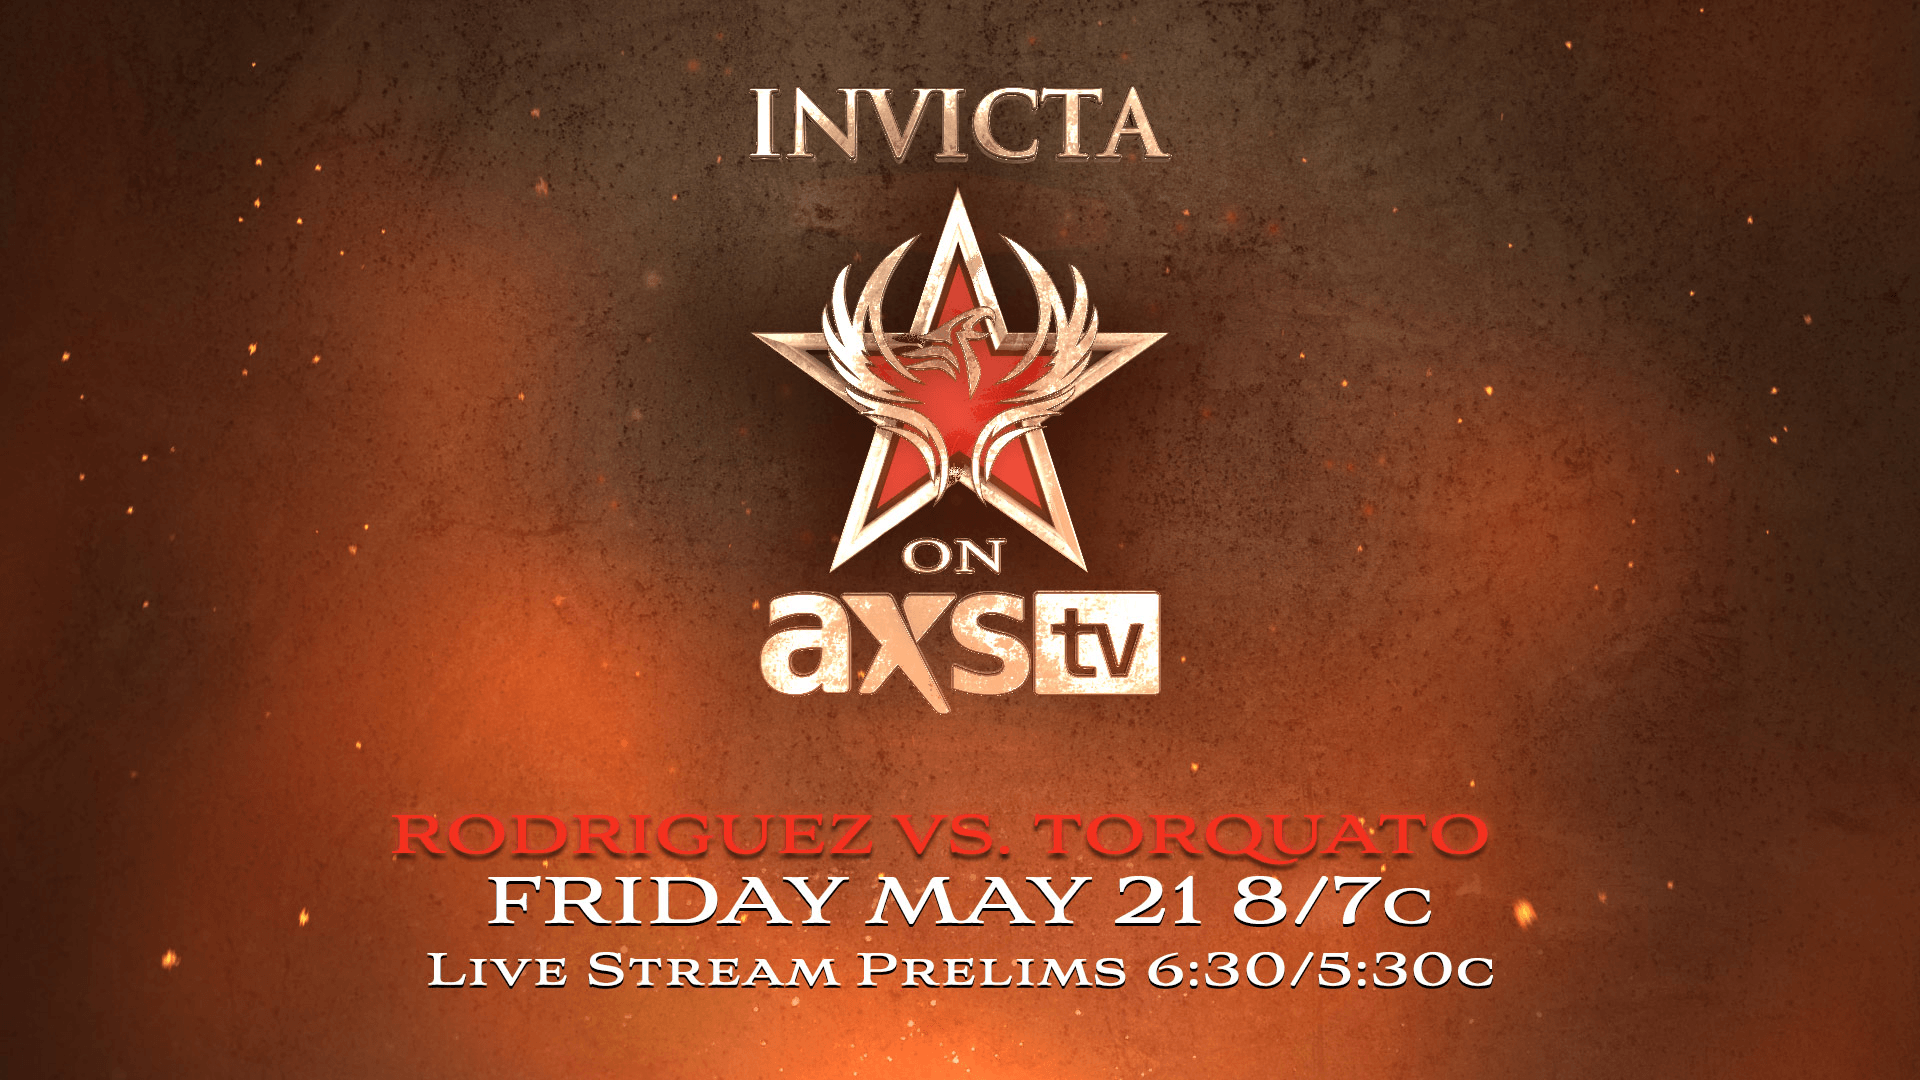 Invicta Fighting Championship comes to AXS TV May 21st!